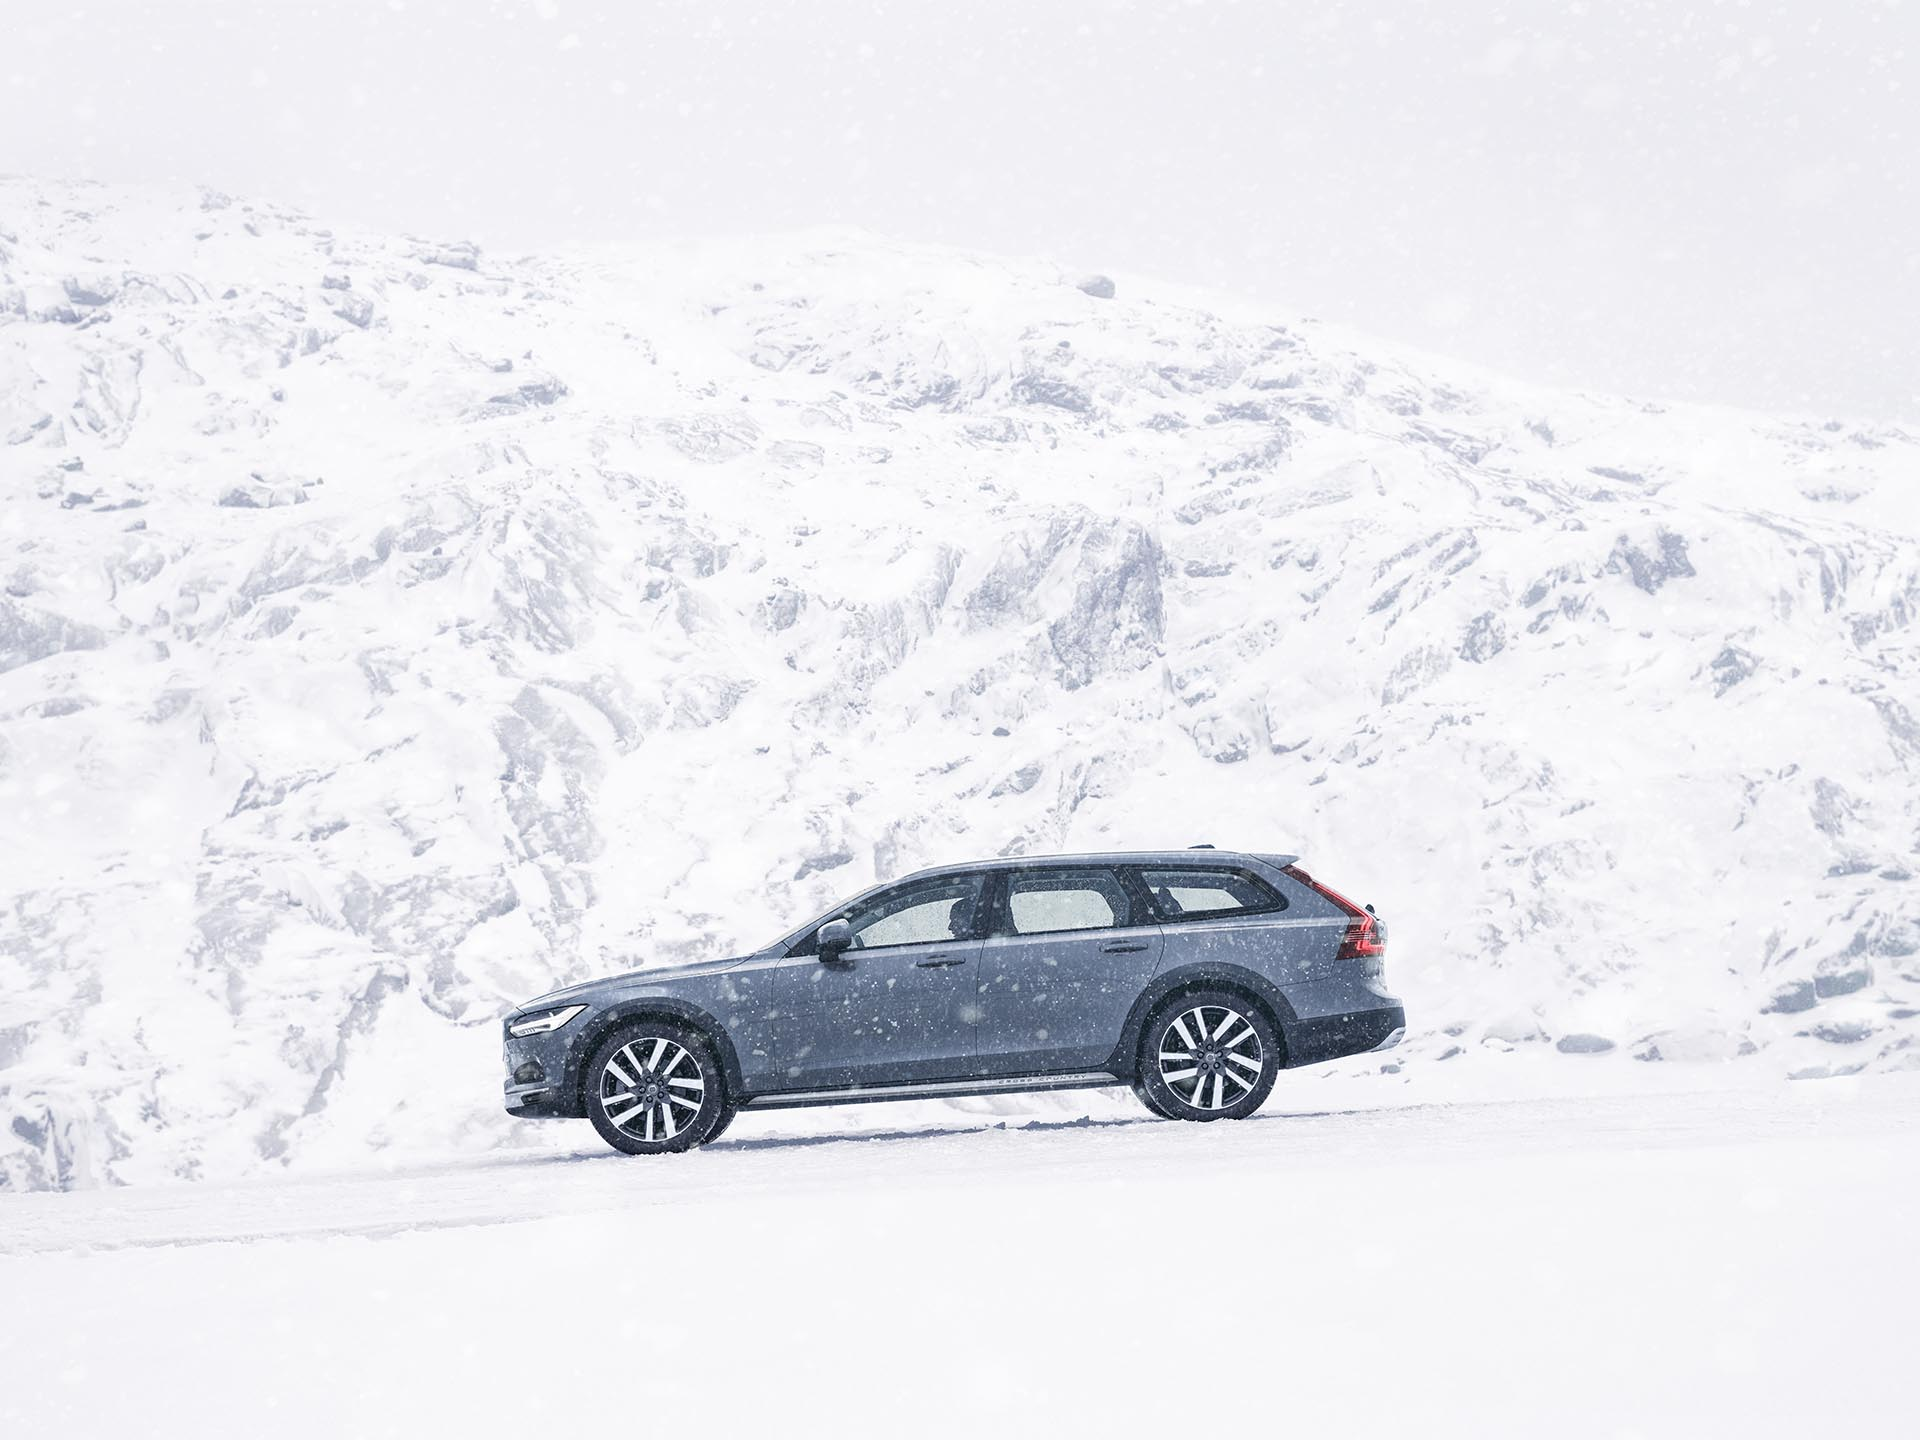 Перламутрово-синий Volvo V90 Cross Country едет по заснеженным горам